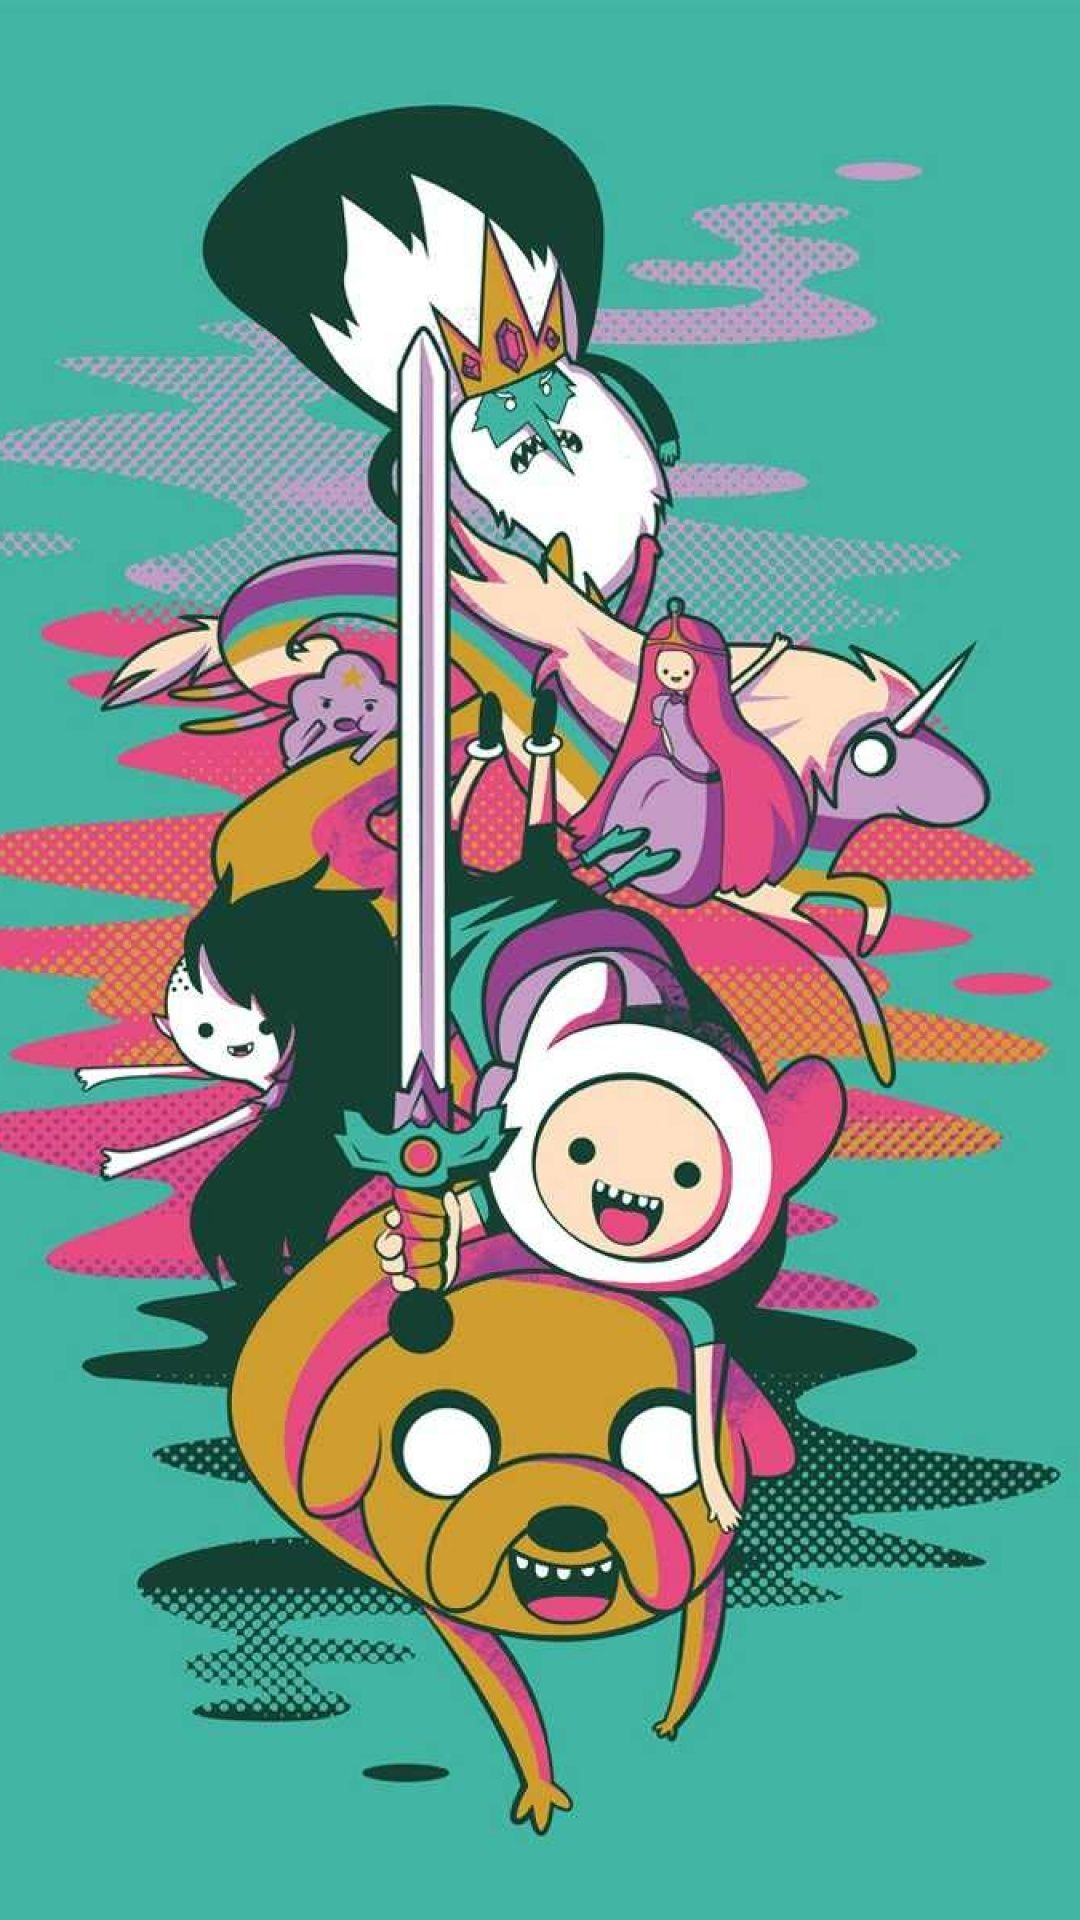 Aesthetic Adventure Time Wallpaper Adventure Time Wallpaper Jake Adventure Time Adventure Time